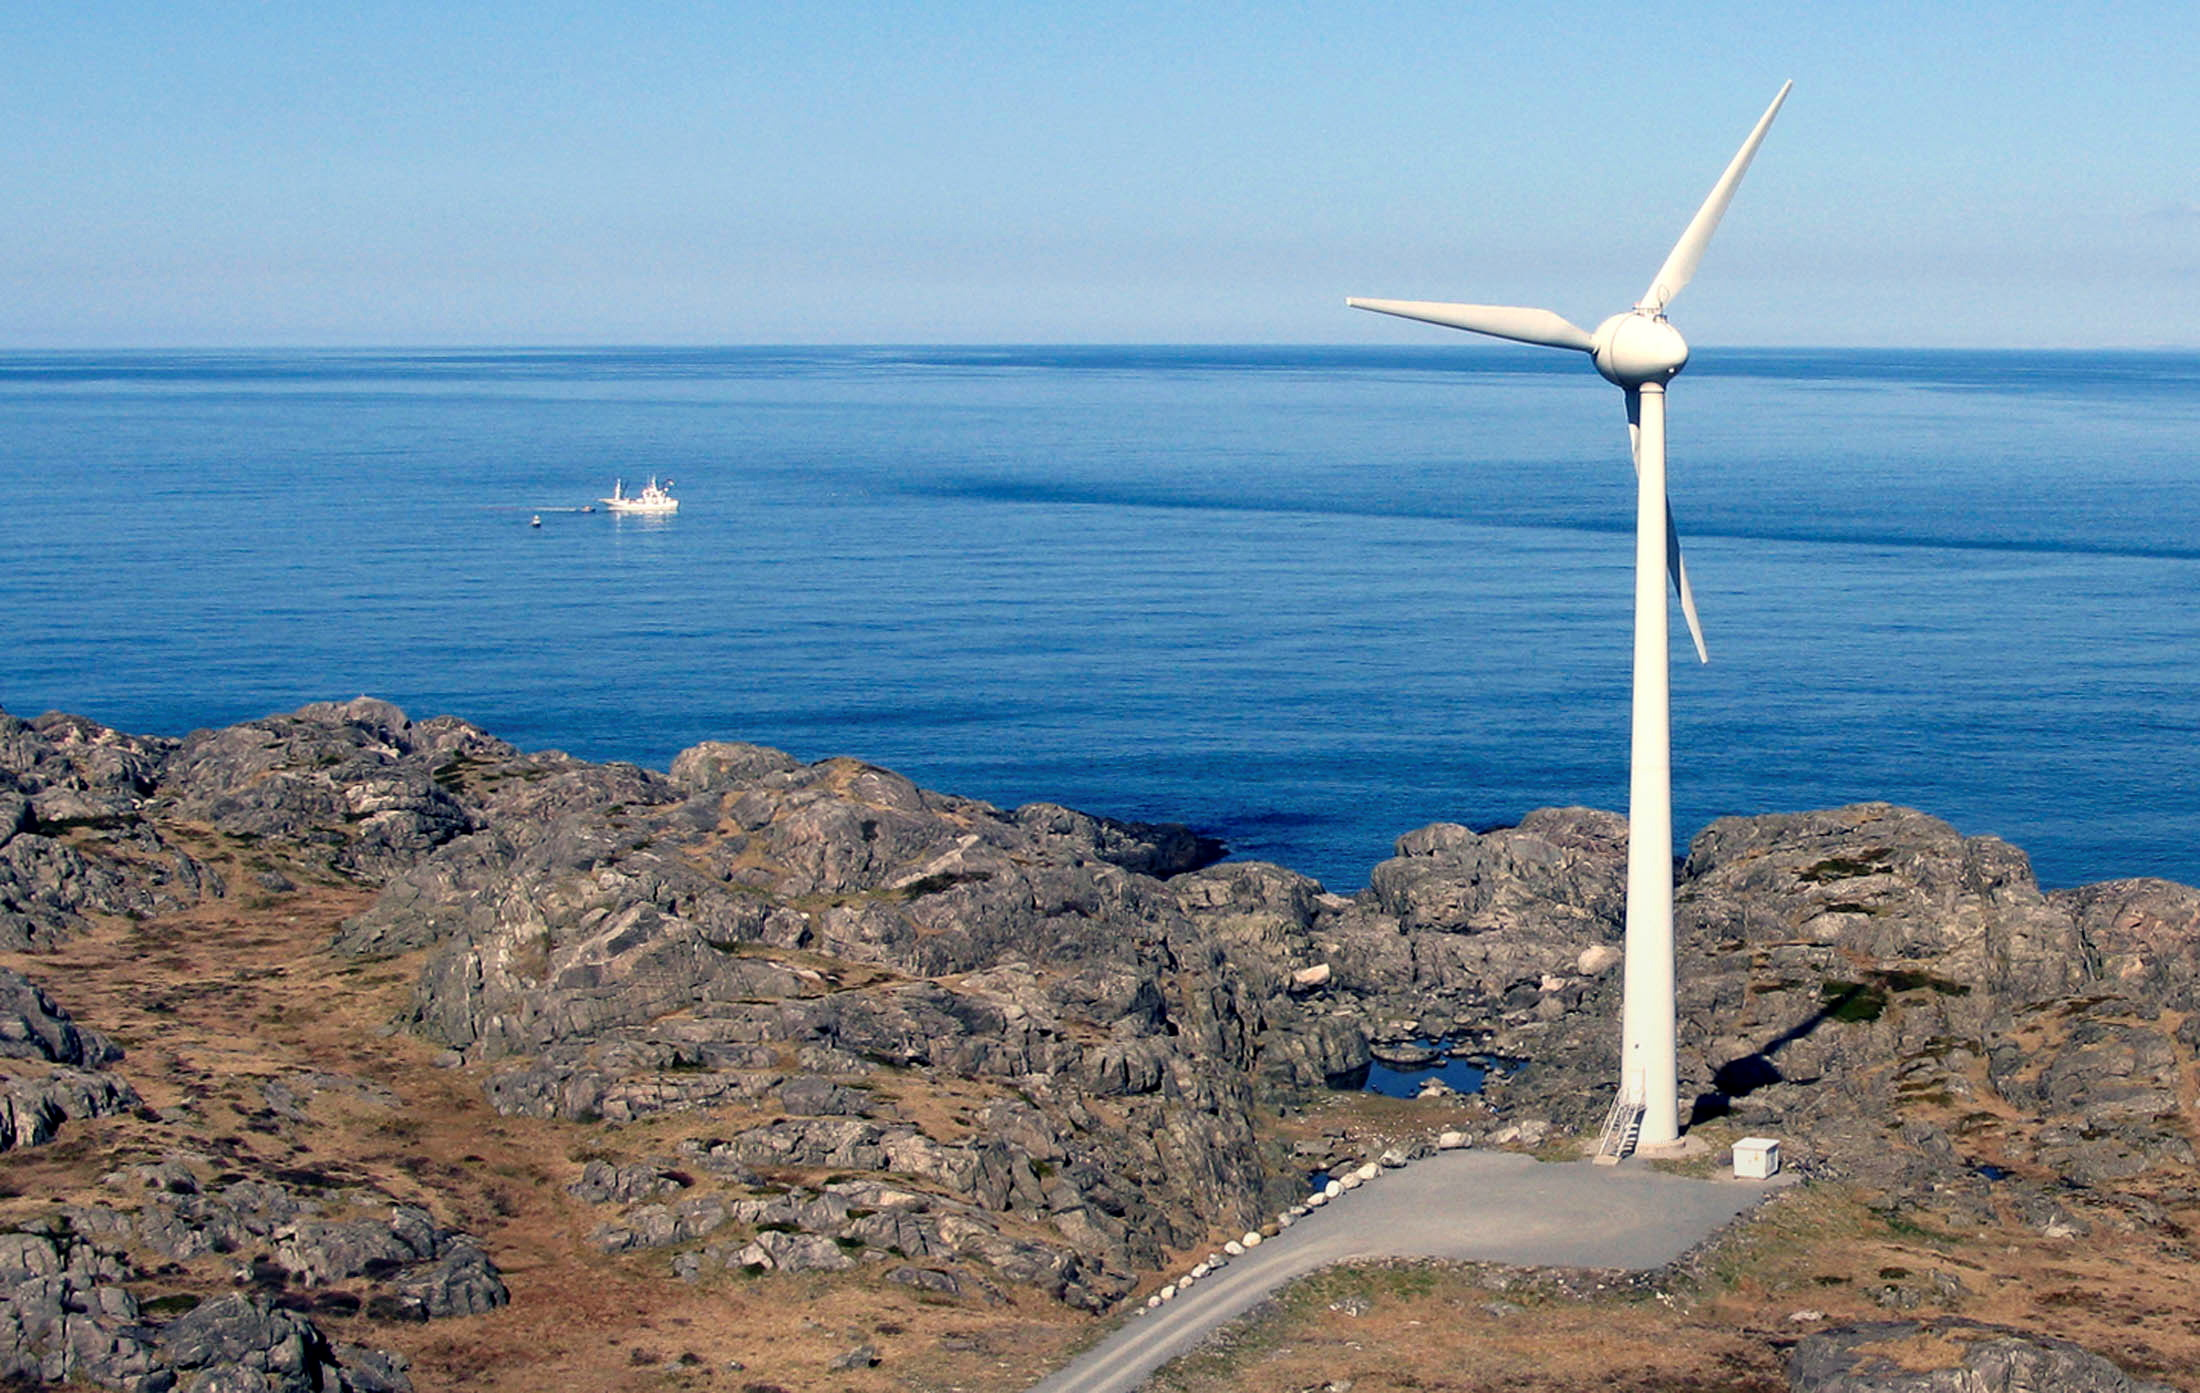 A windmill stands next to the ocean in Utsira, Norway April 22, 2008. REUTERS/Wojciech Moskwa